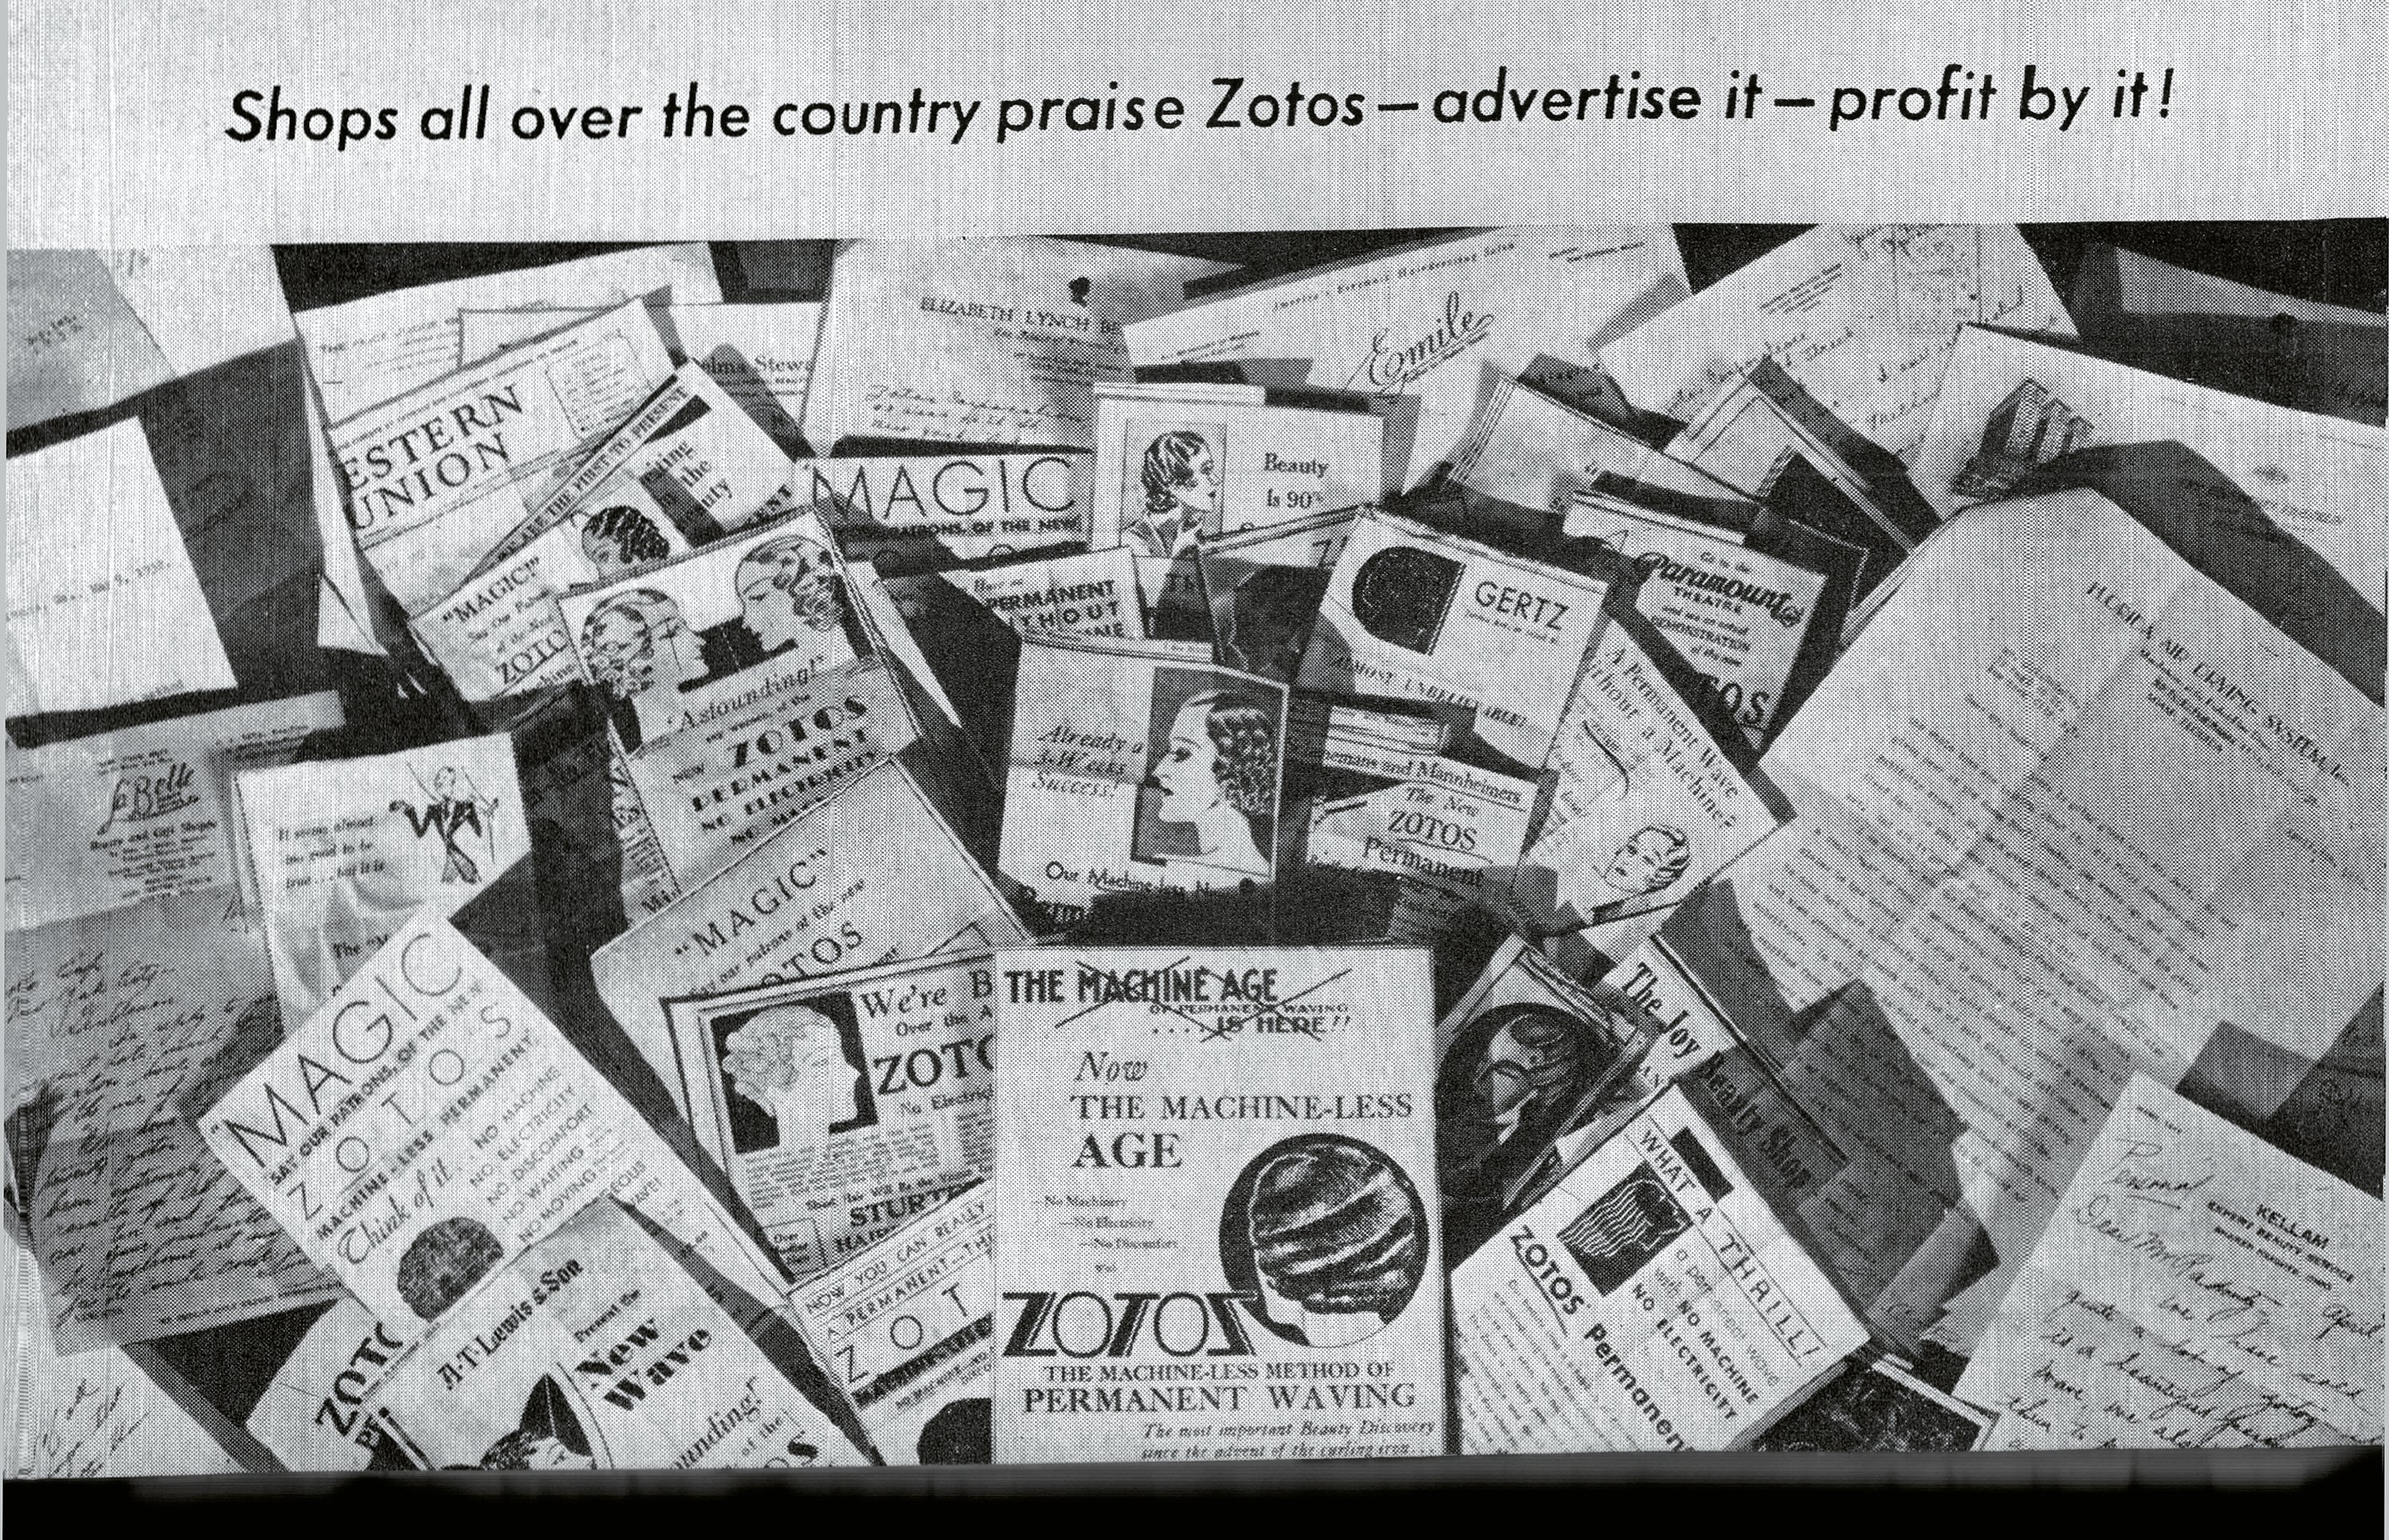 The various nationwide advertisements from Zotos, then known as Inecto.